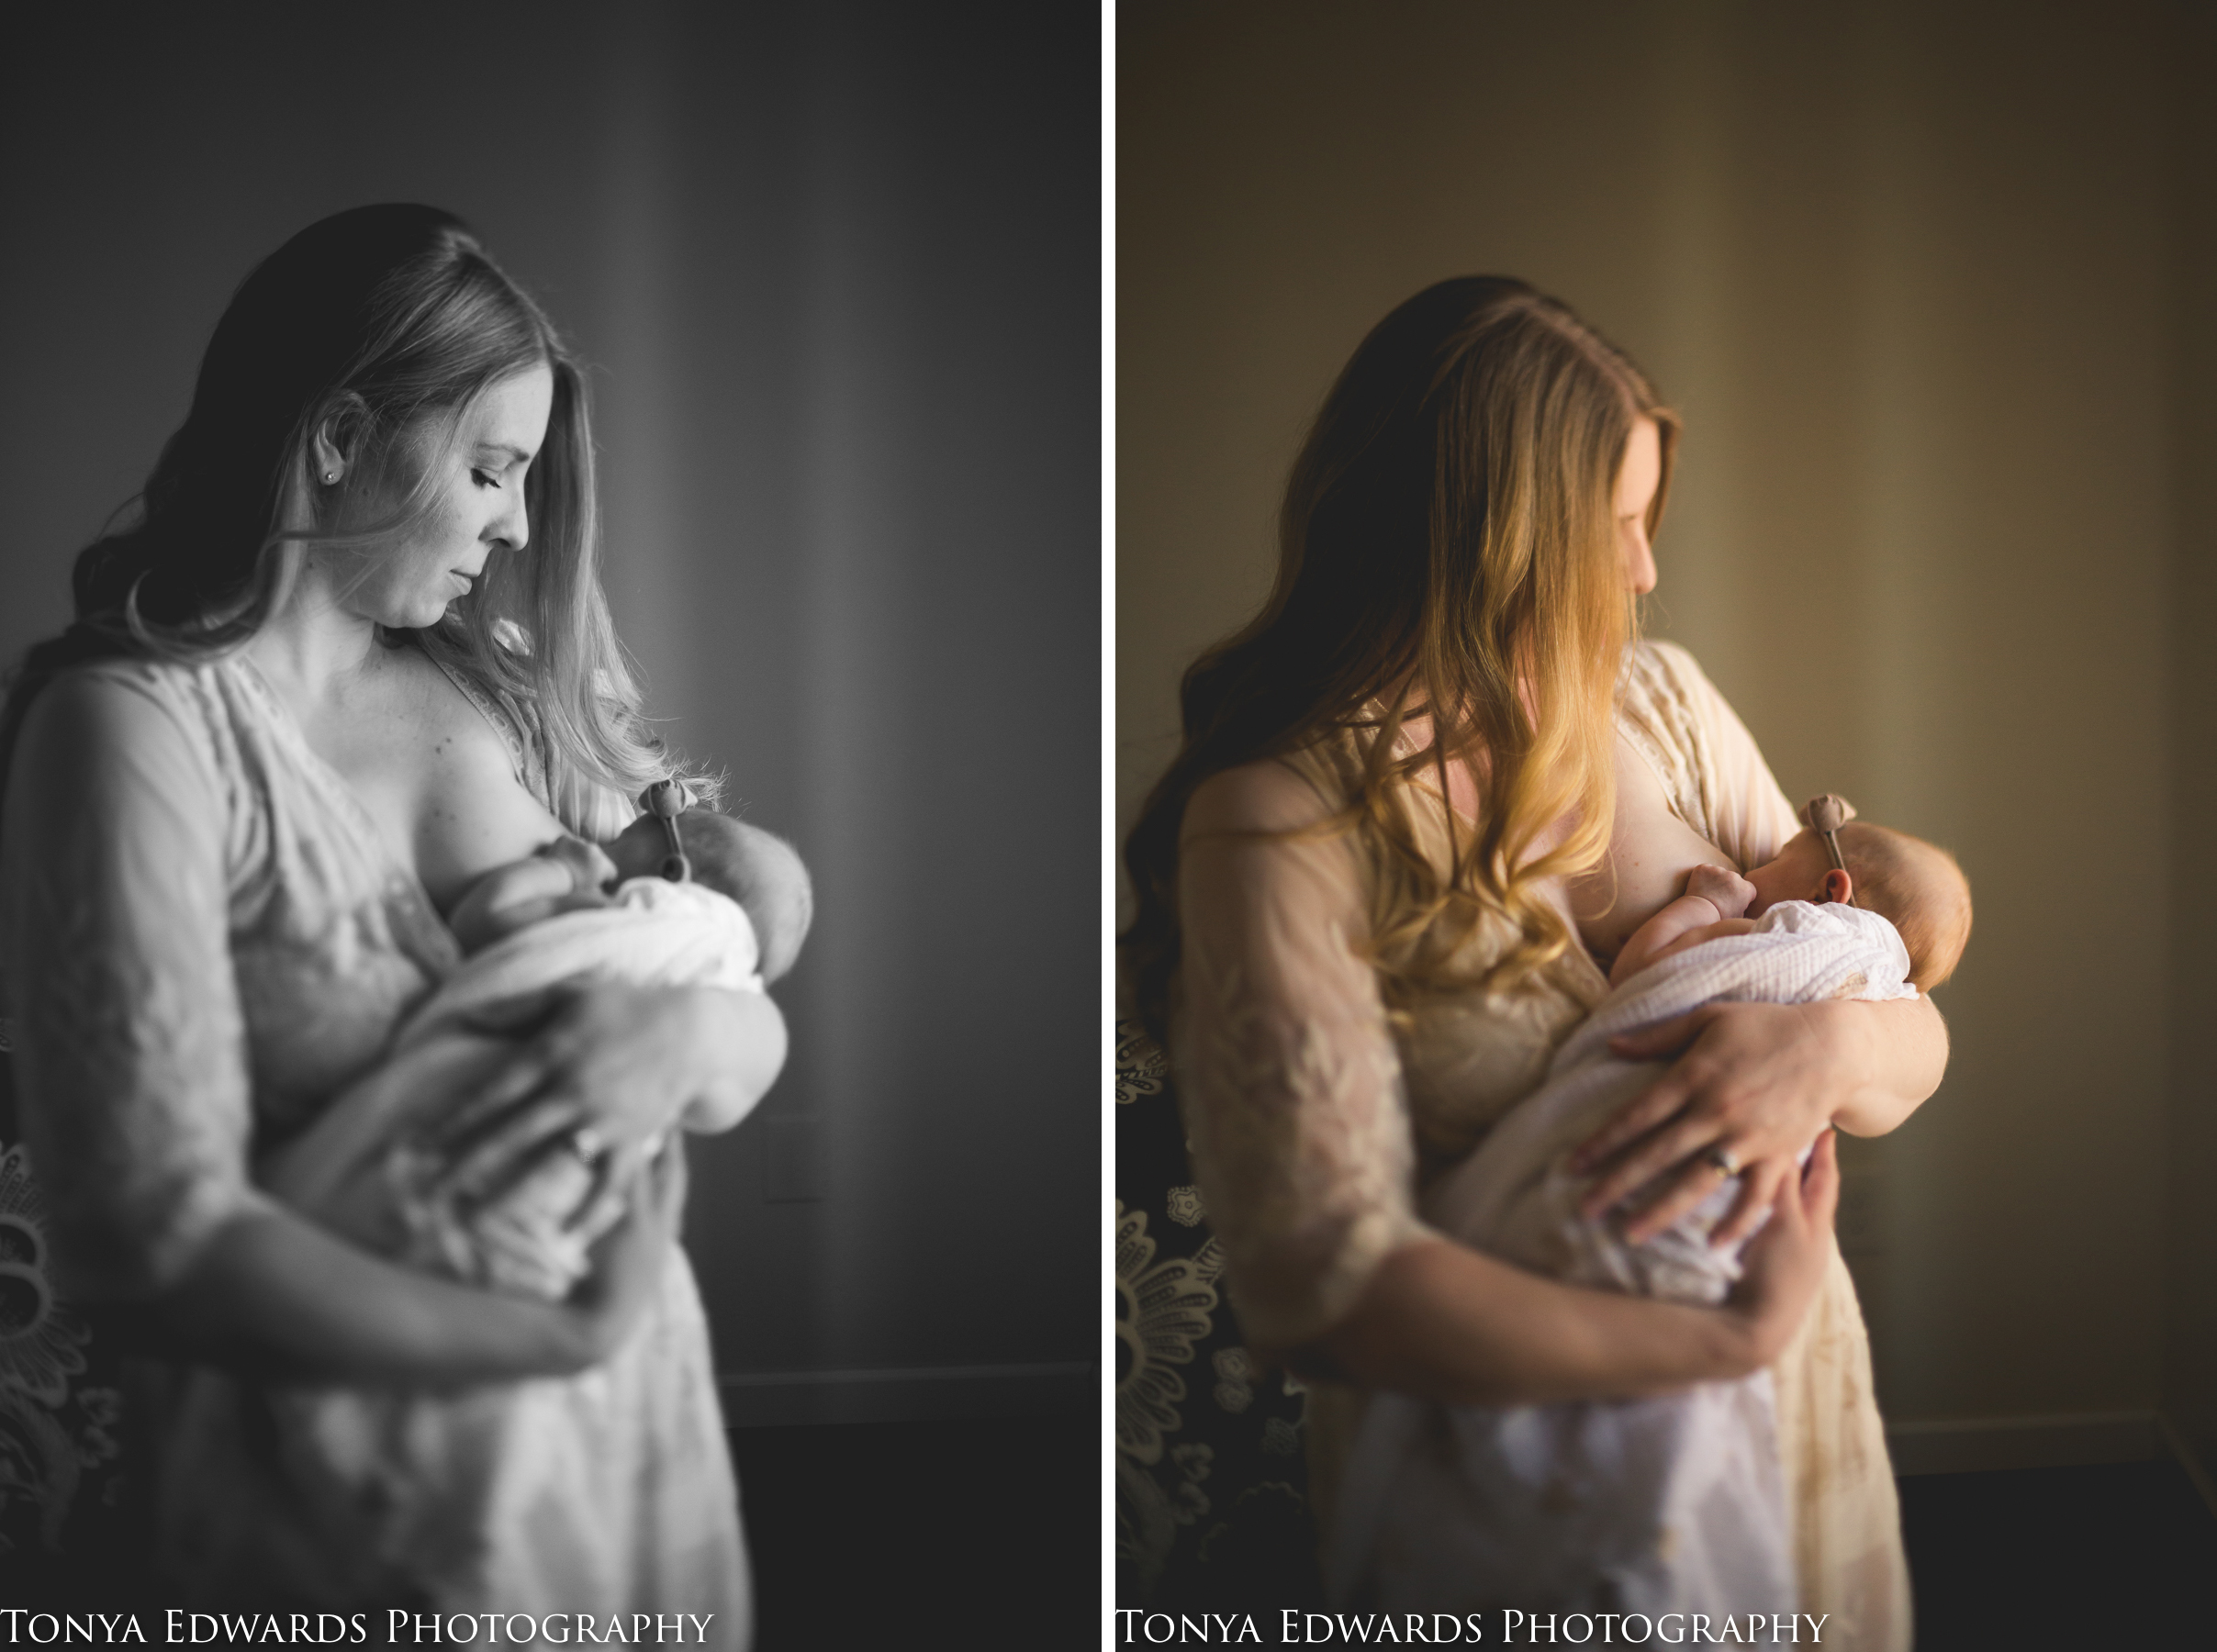 Tonya Edwards | Oroville Photographer | mom with long blonde hair standing breastfeeding baby girl in beaded gown in window light